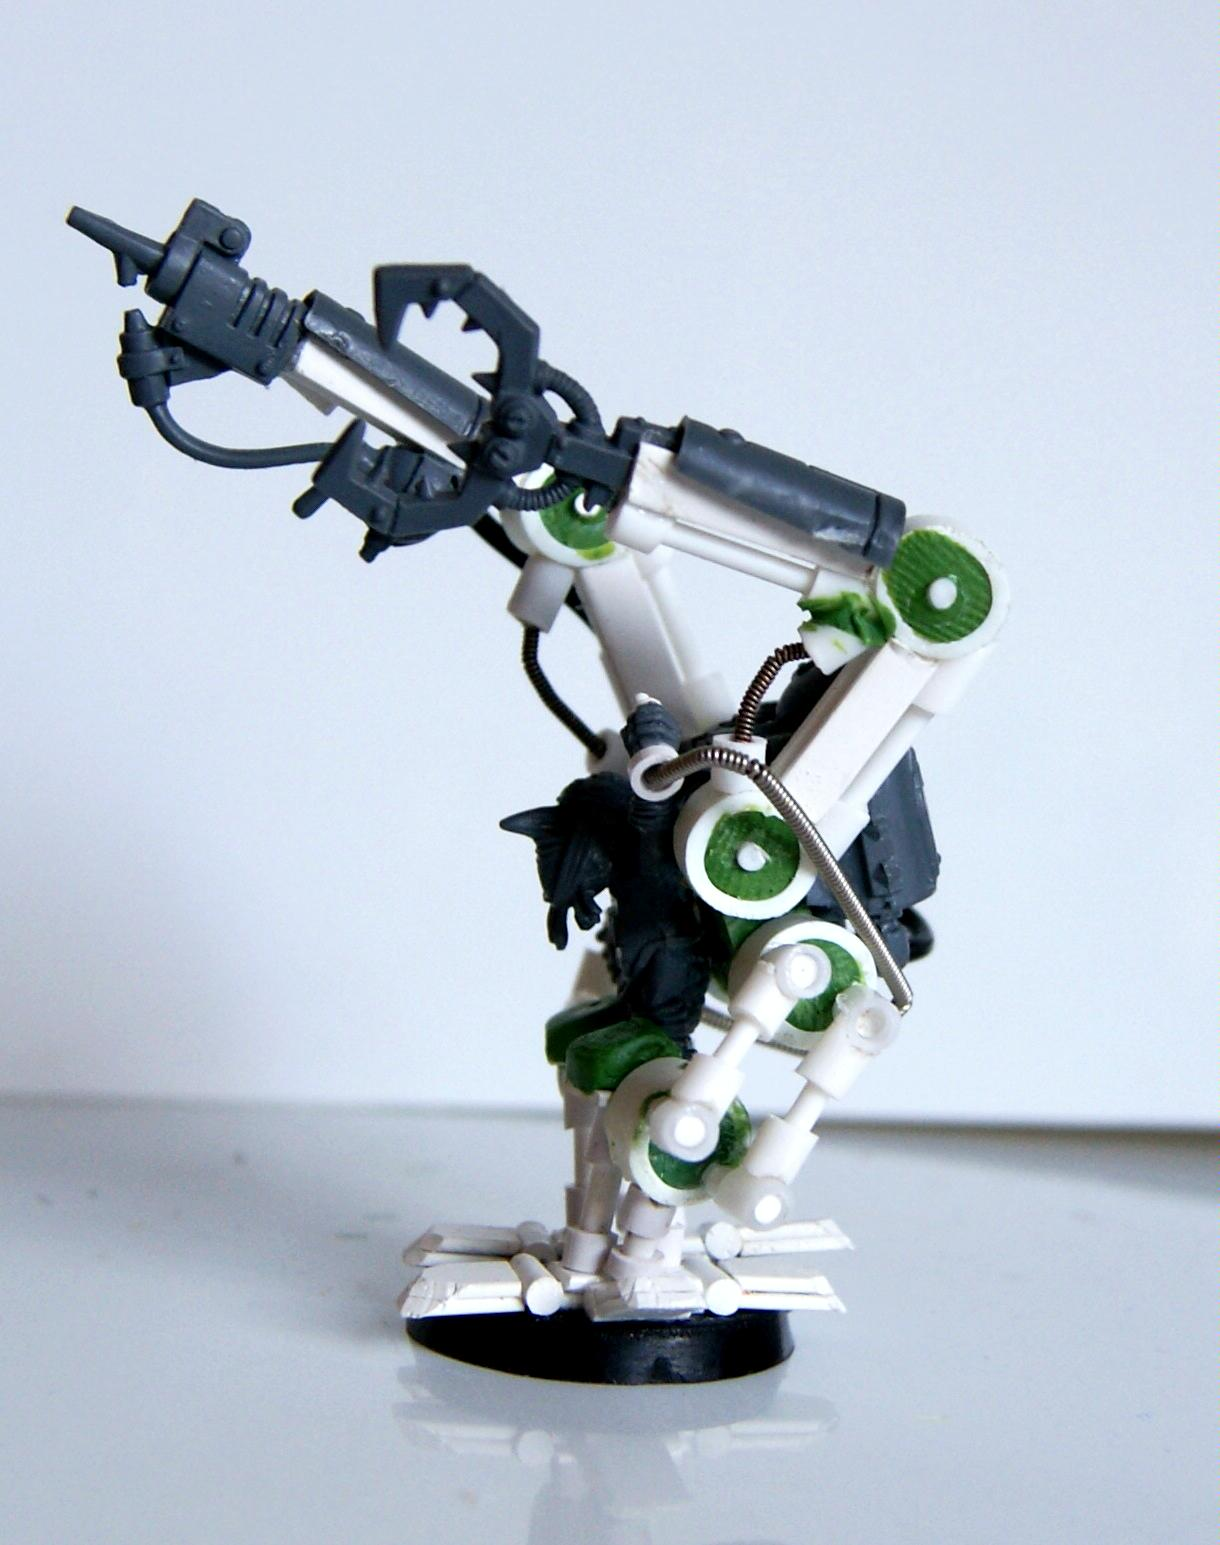 Burnaboy, Burnagrot, Conversion, Grot Rebellion, Grot Rebels, Grots, Orks, Warhammer 40,000